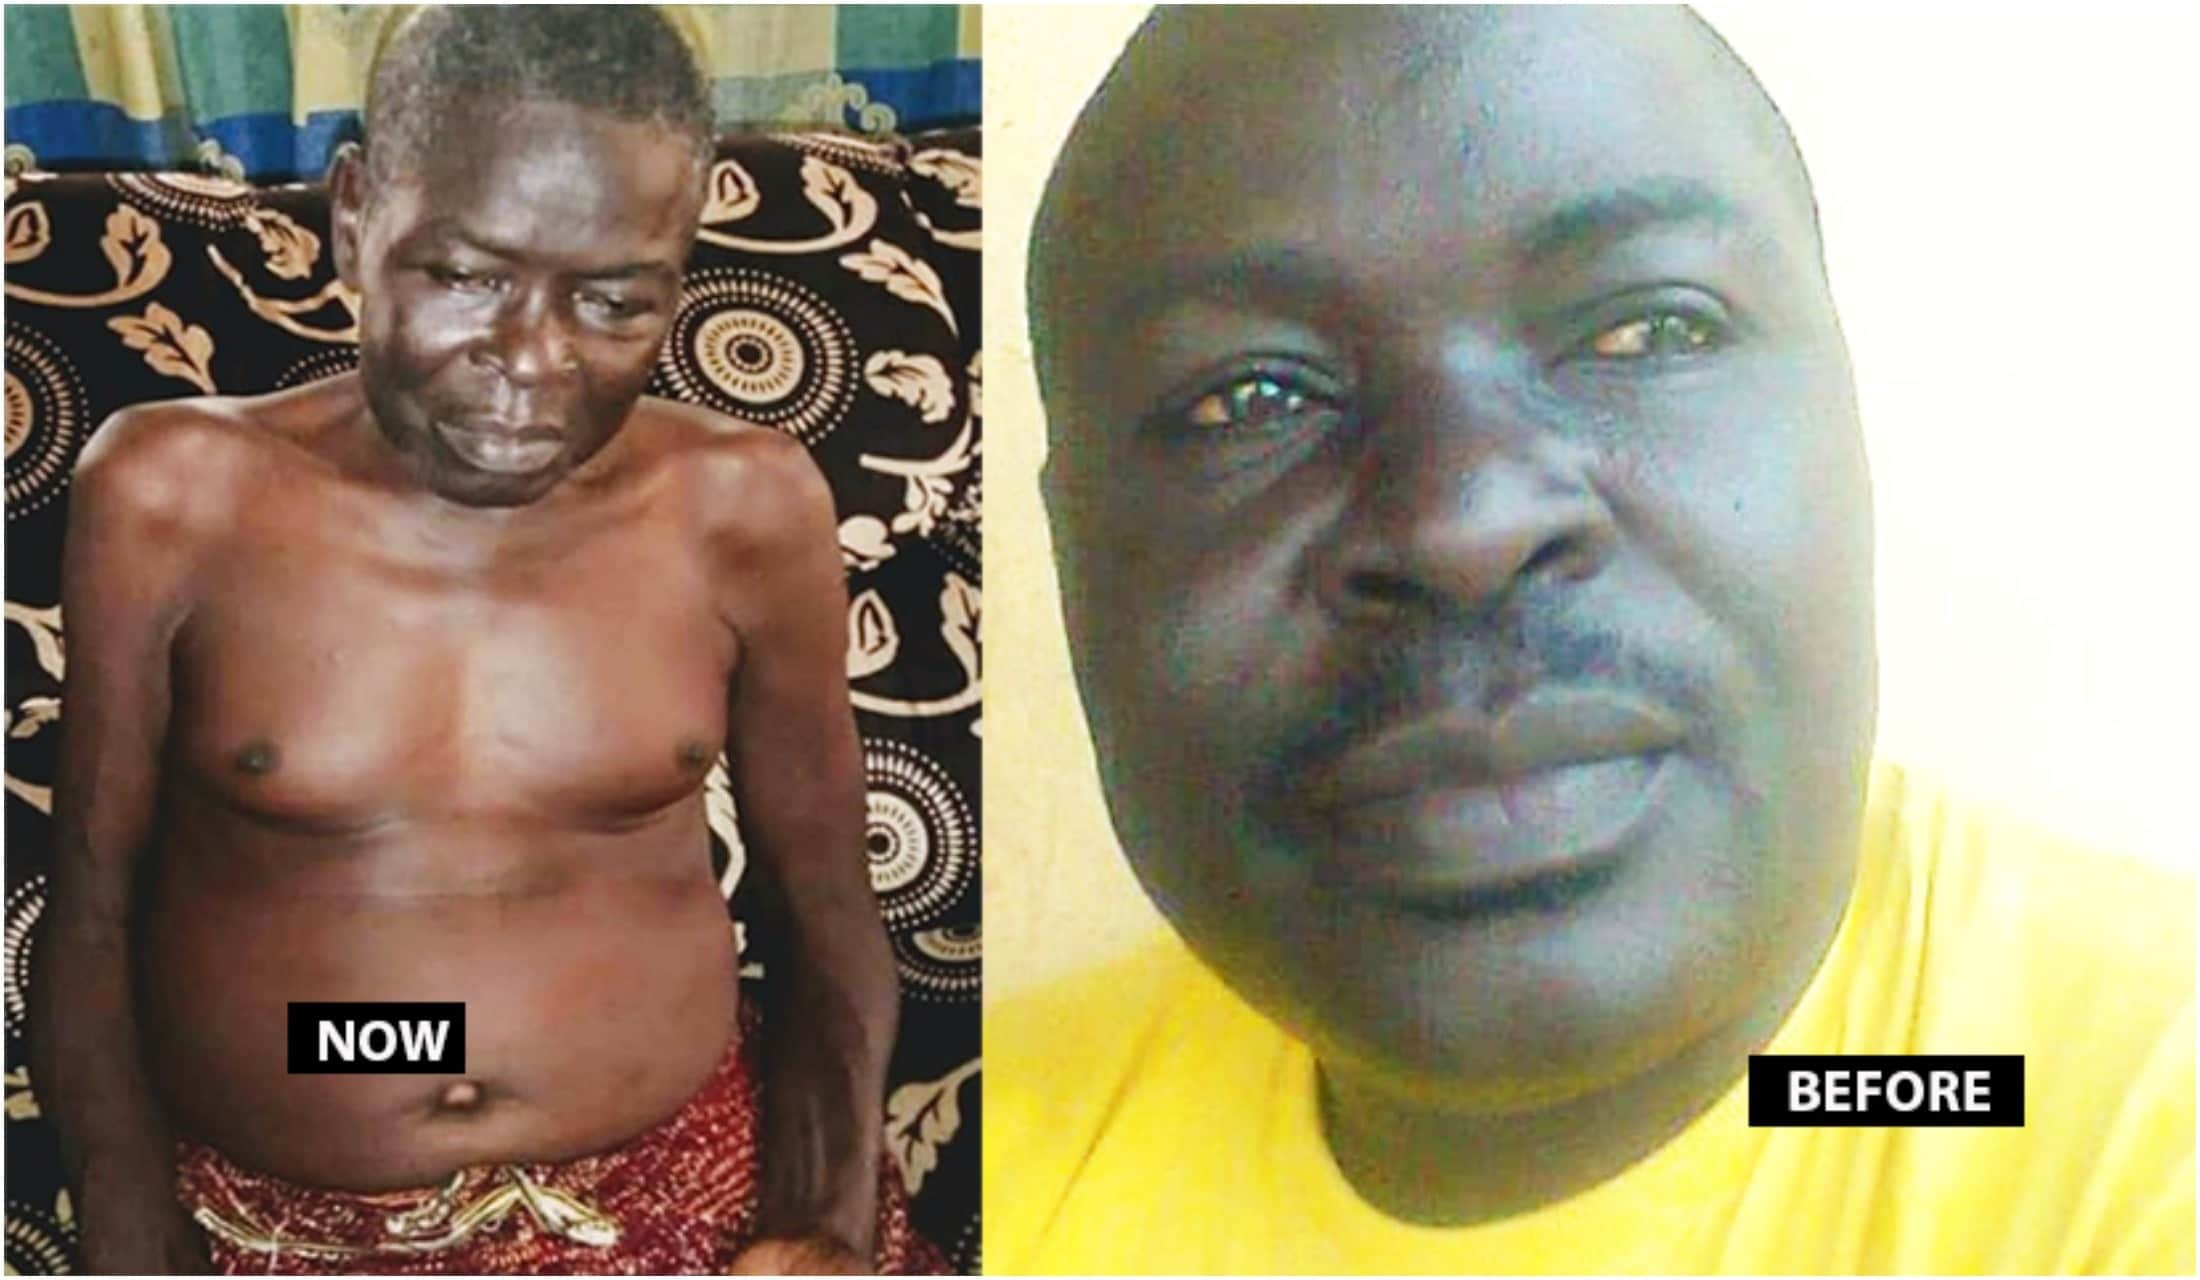 Akinpelu Akeem cries out for help